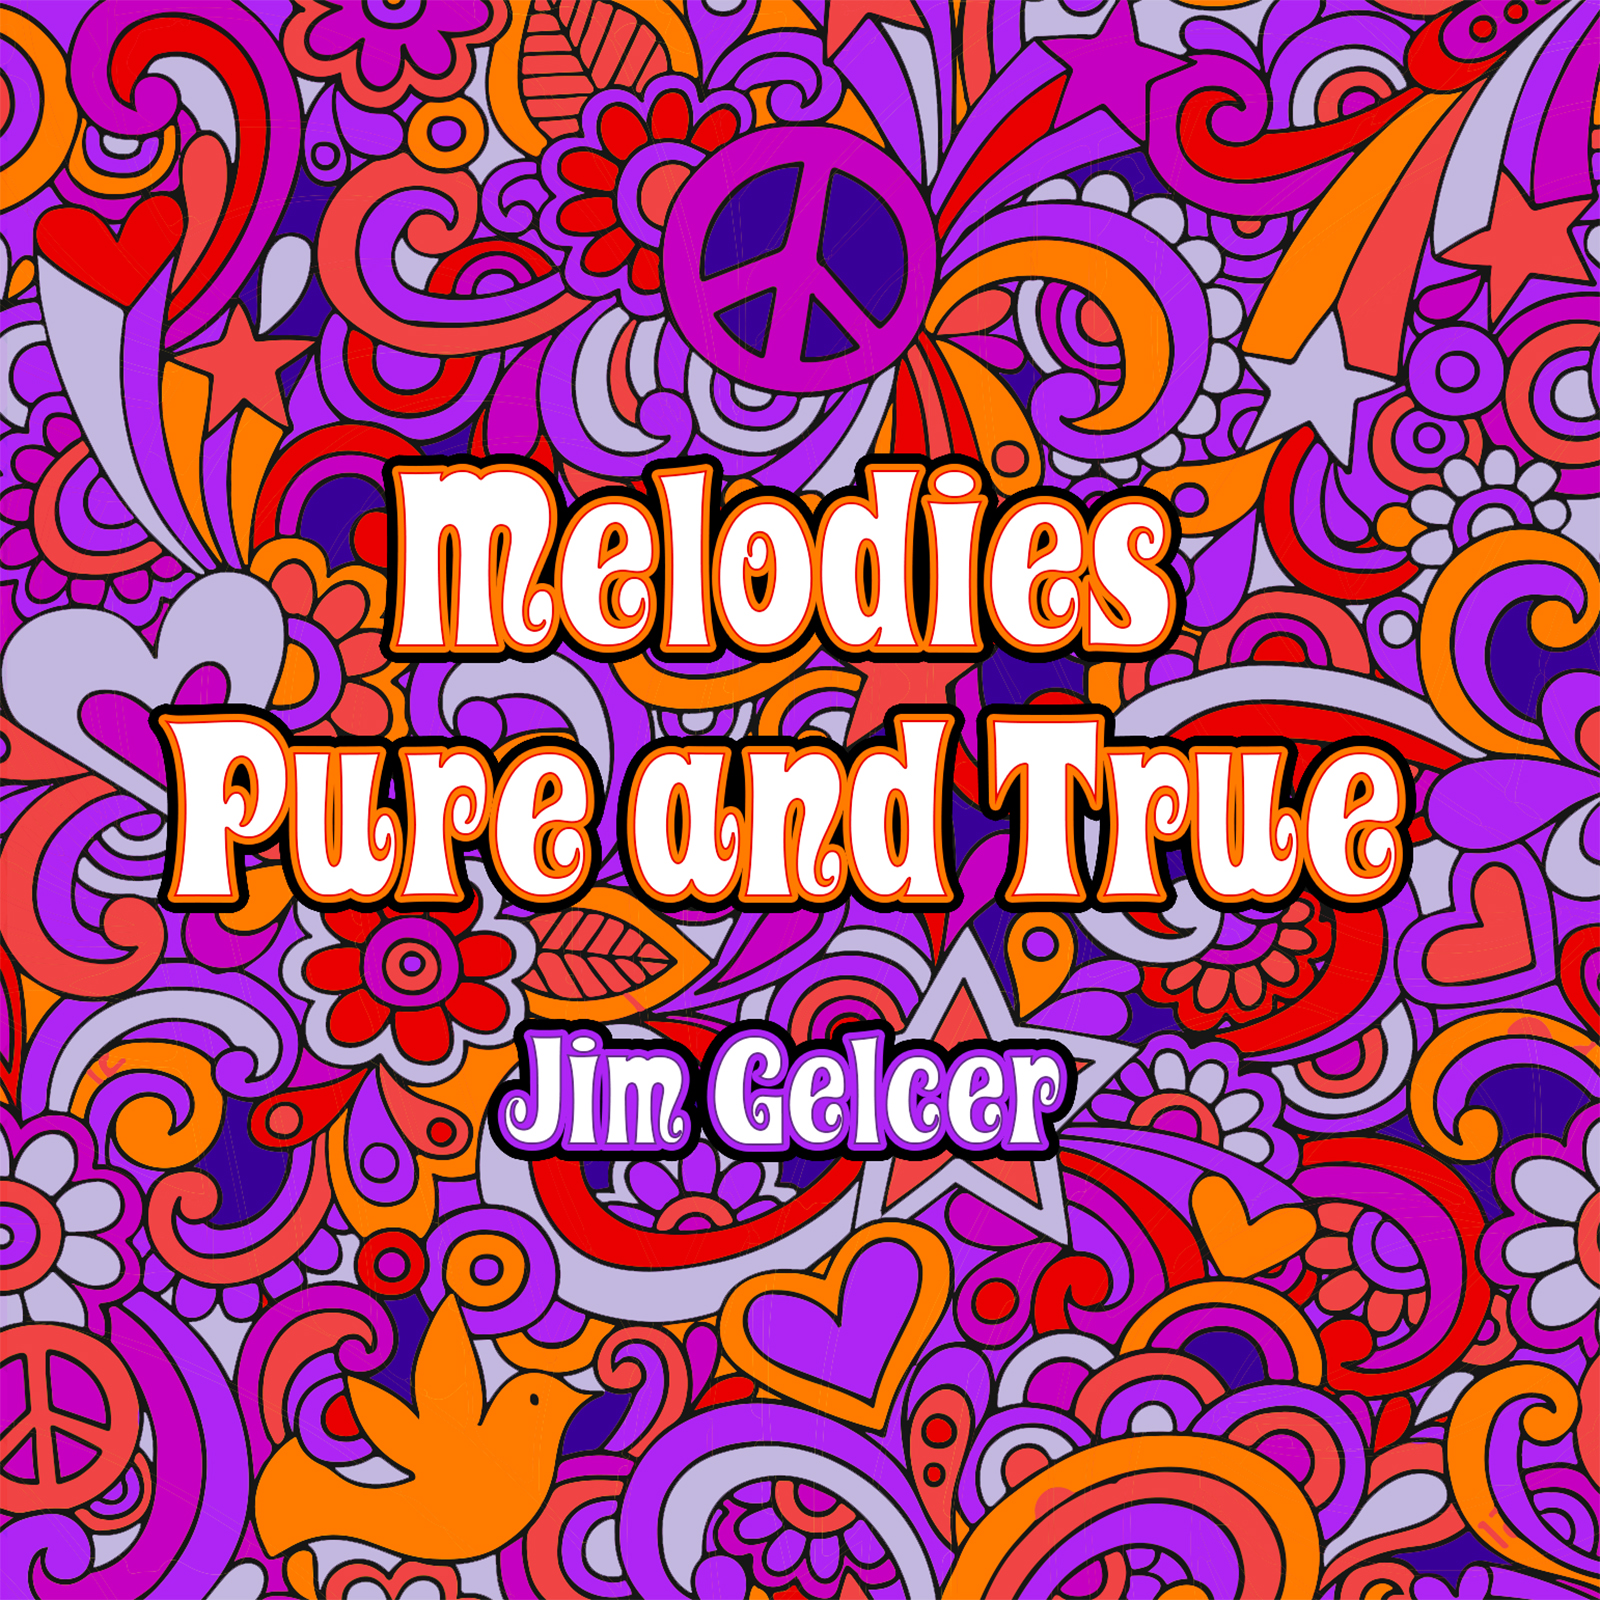 Jim Gelcer | Melodies Pure and True